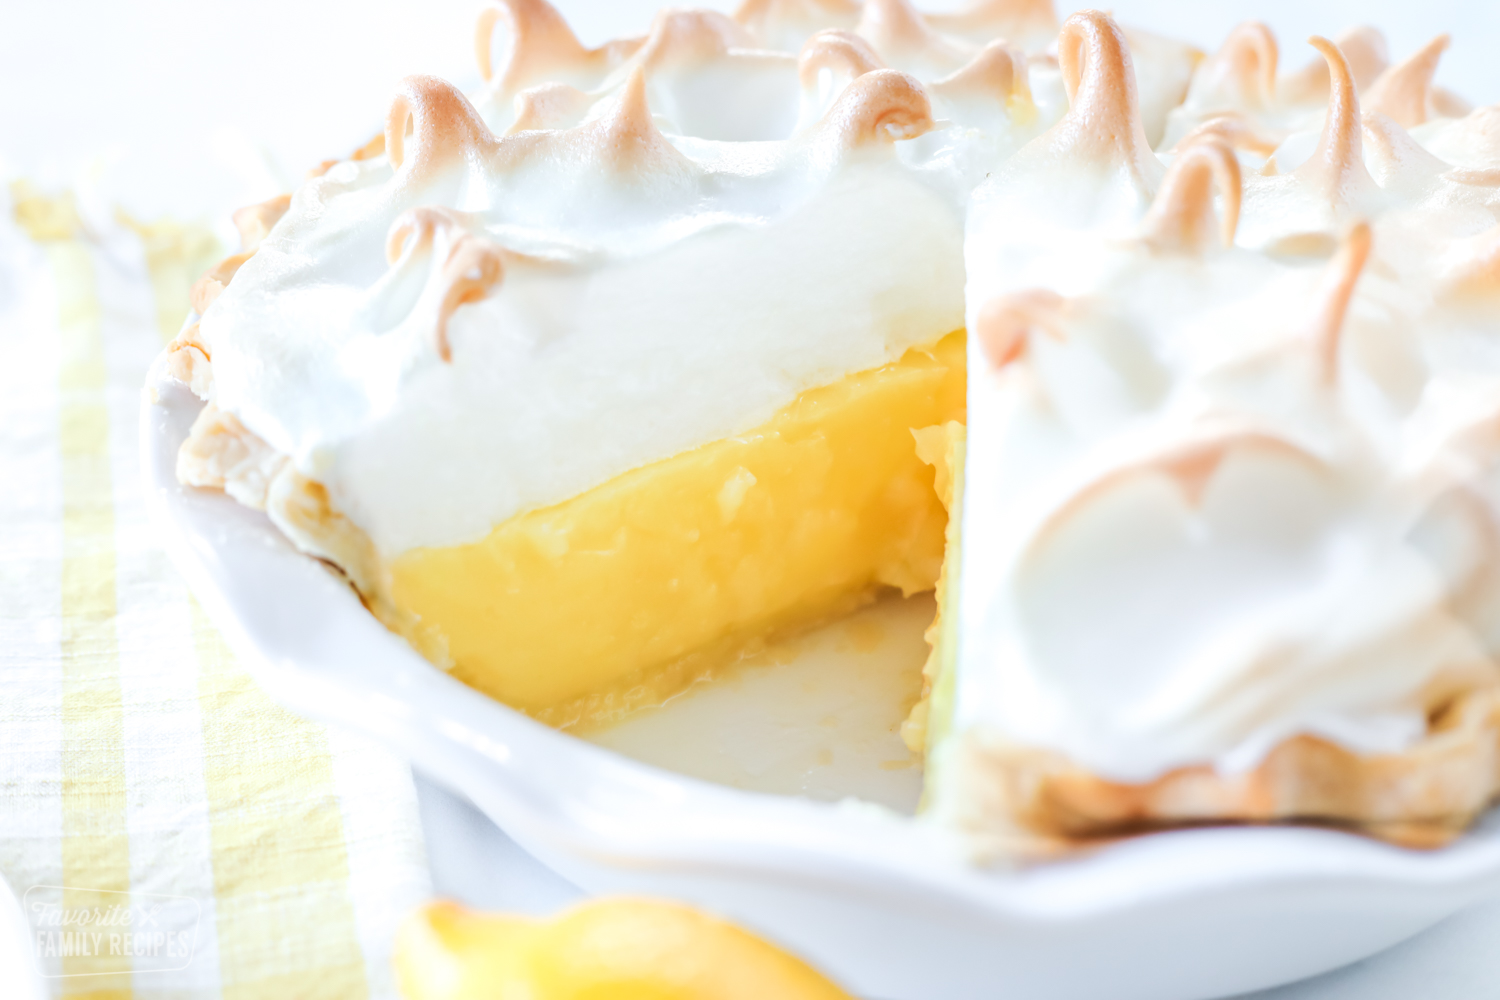 A whole lemon meringue pie in a white pie pan with one slice removed to show lemon layer and crust